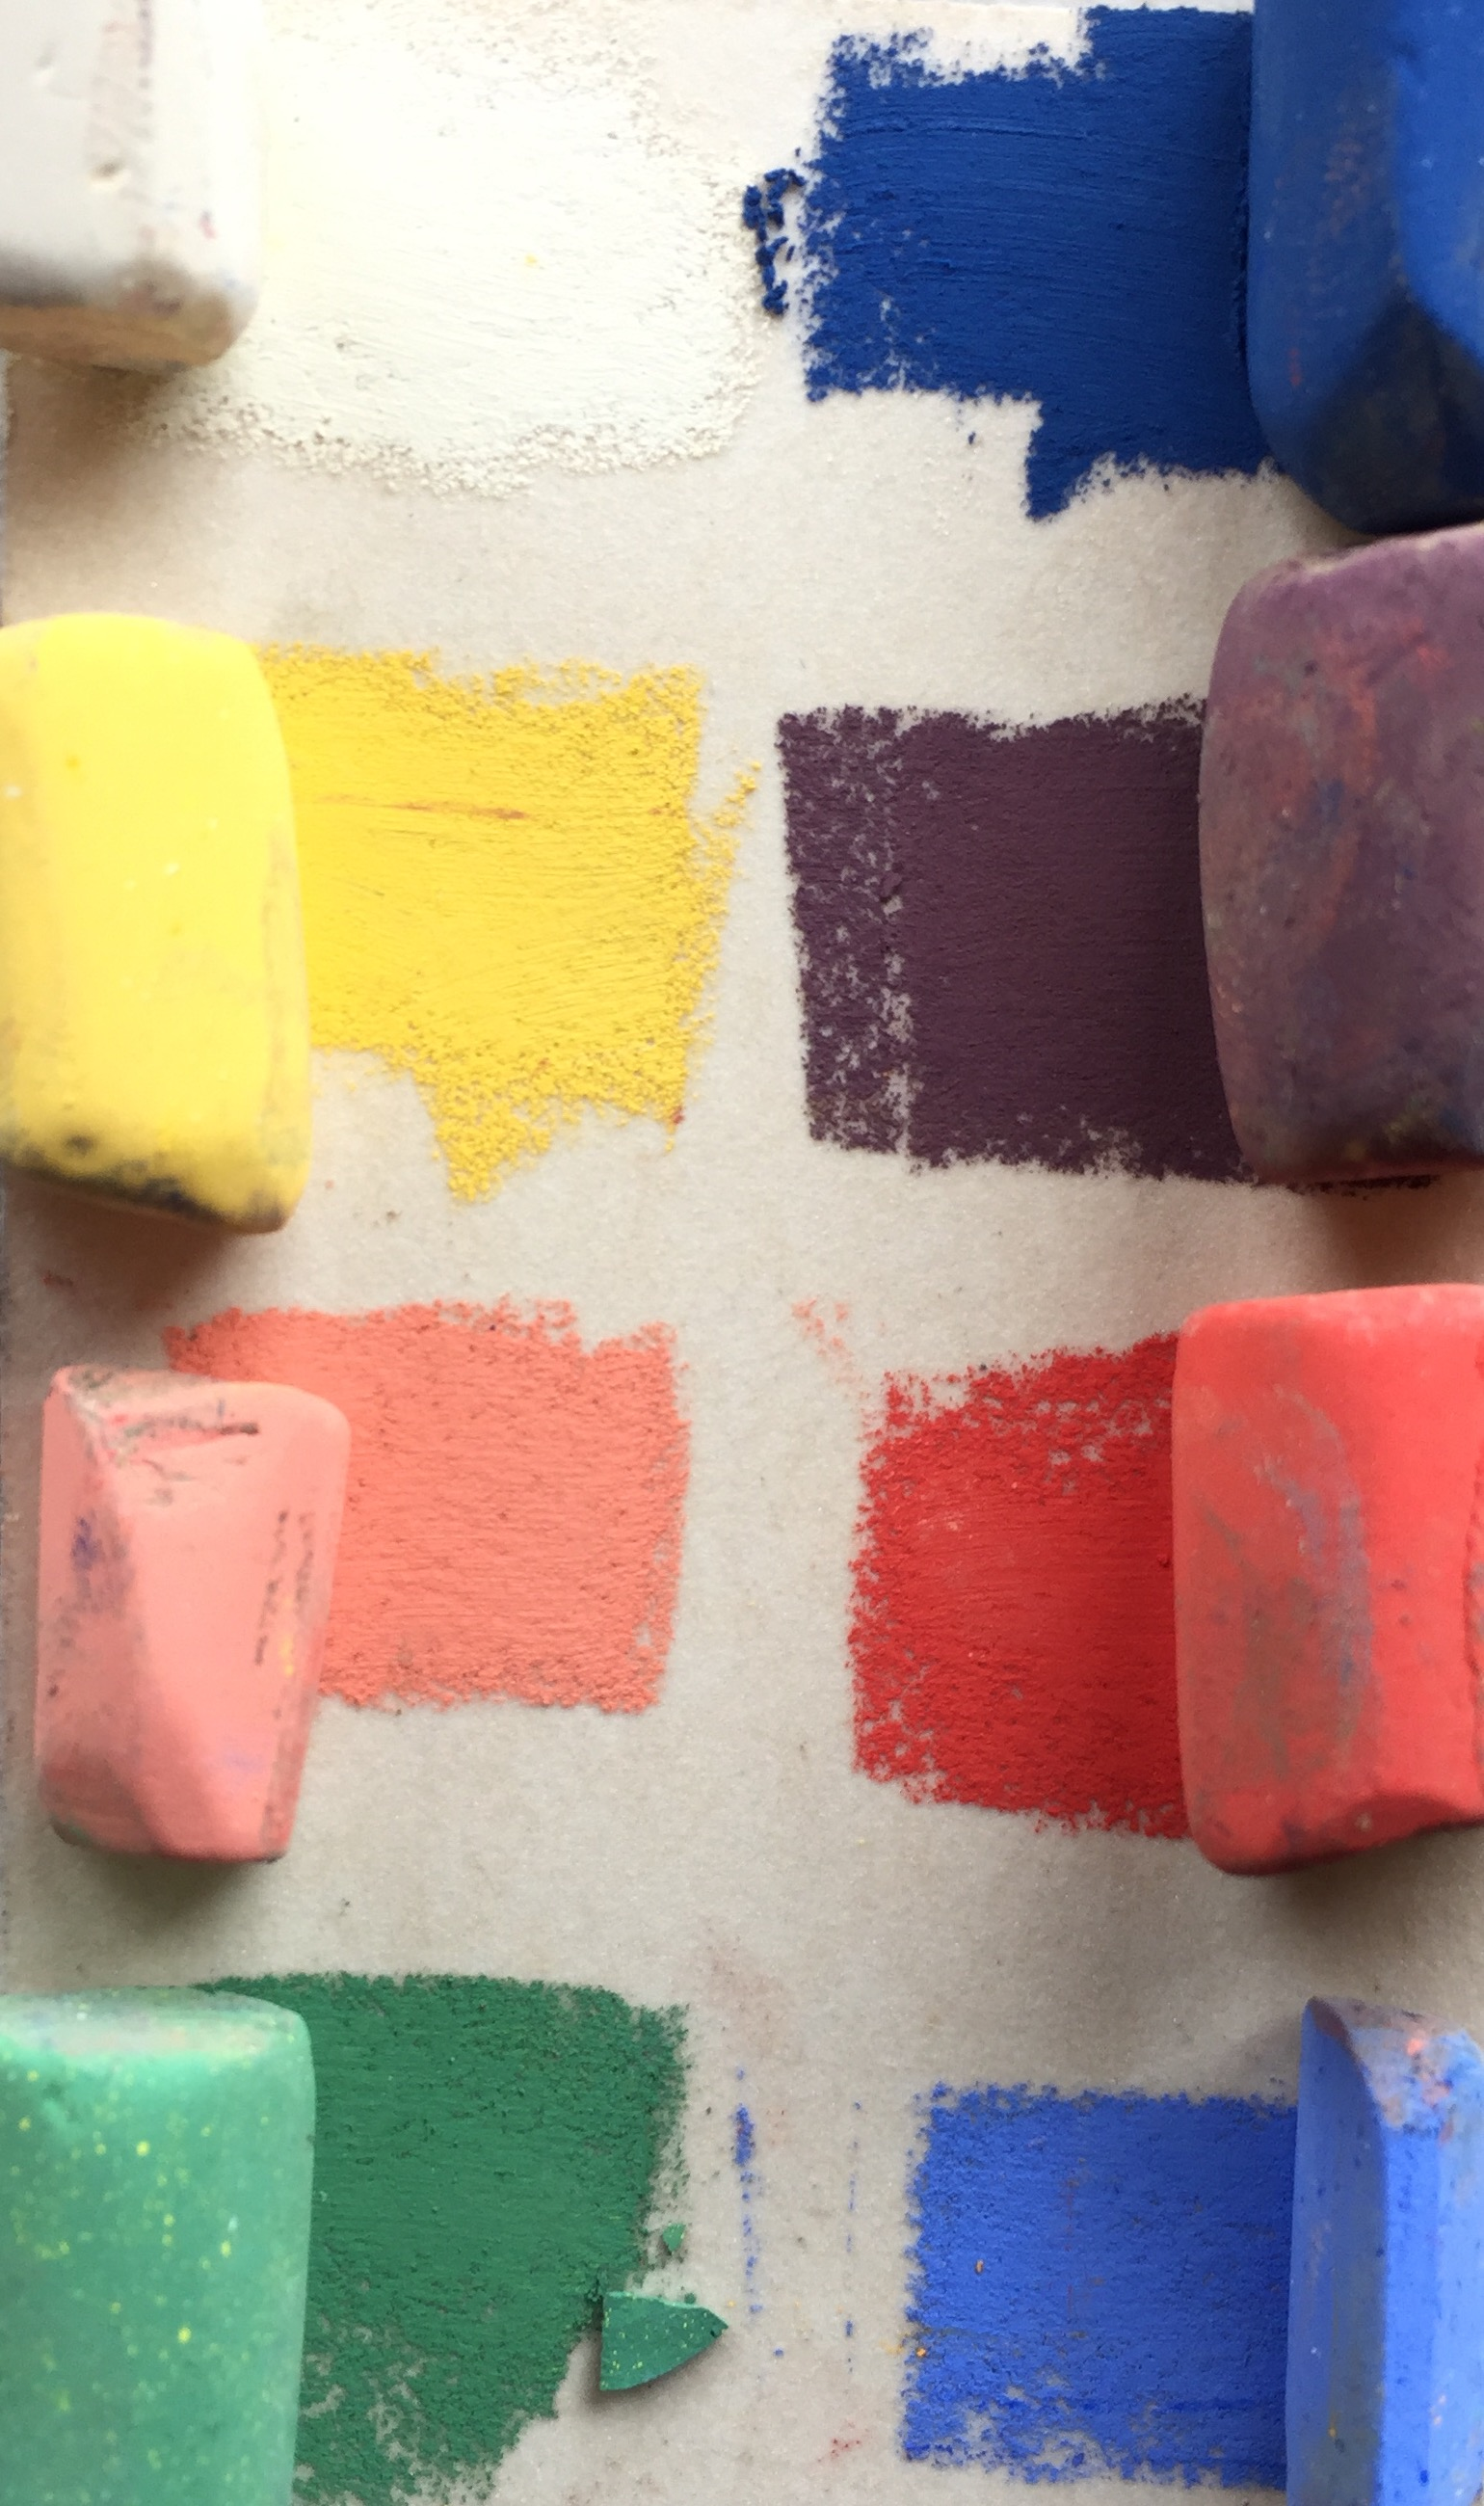 Lack of colour choices: Eight pastels from Unison starter set